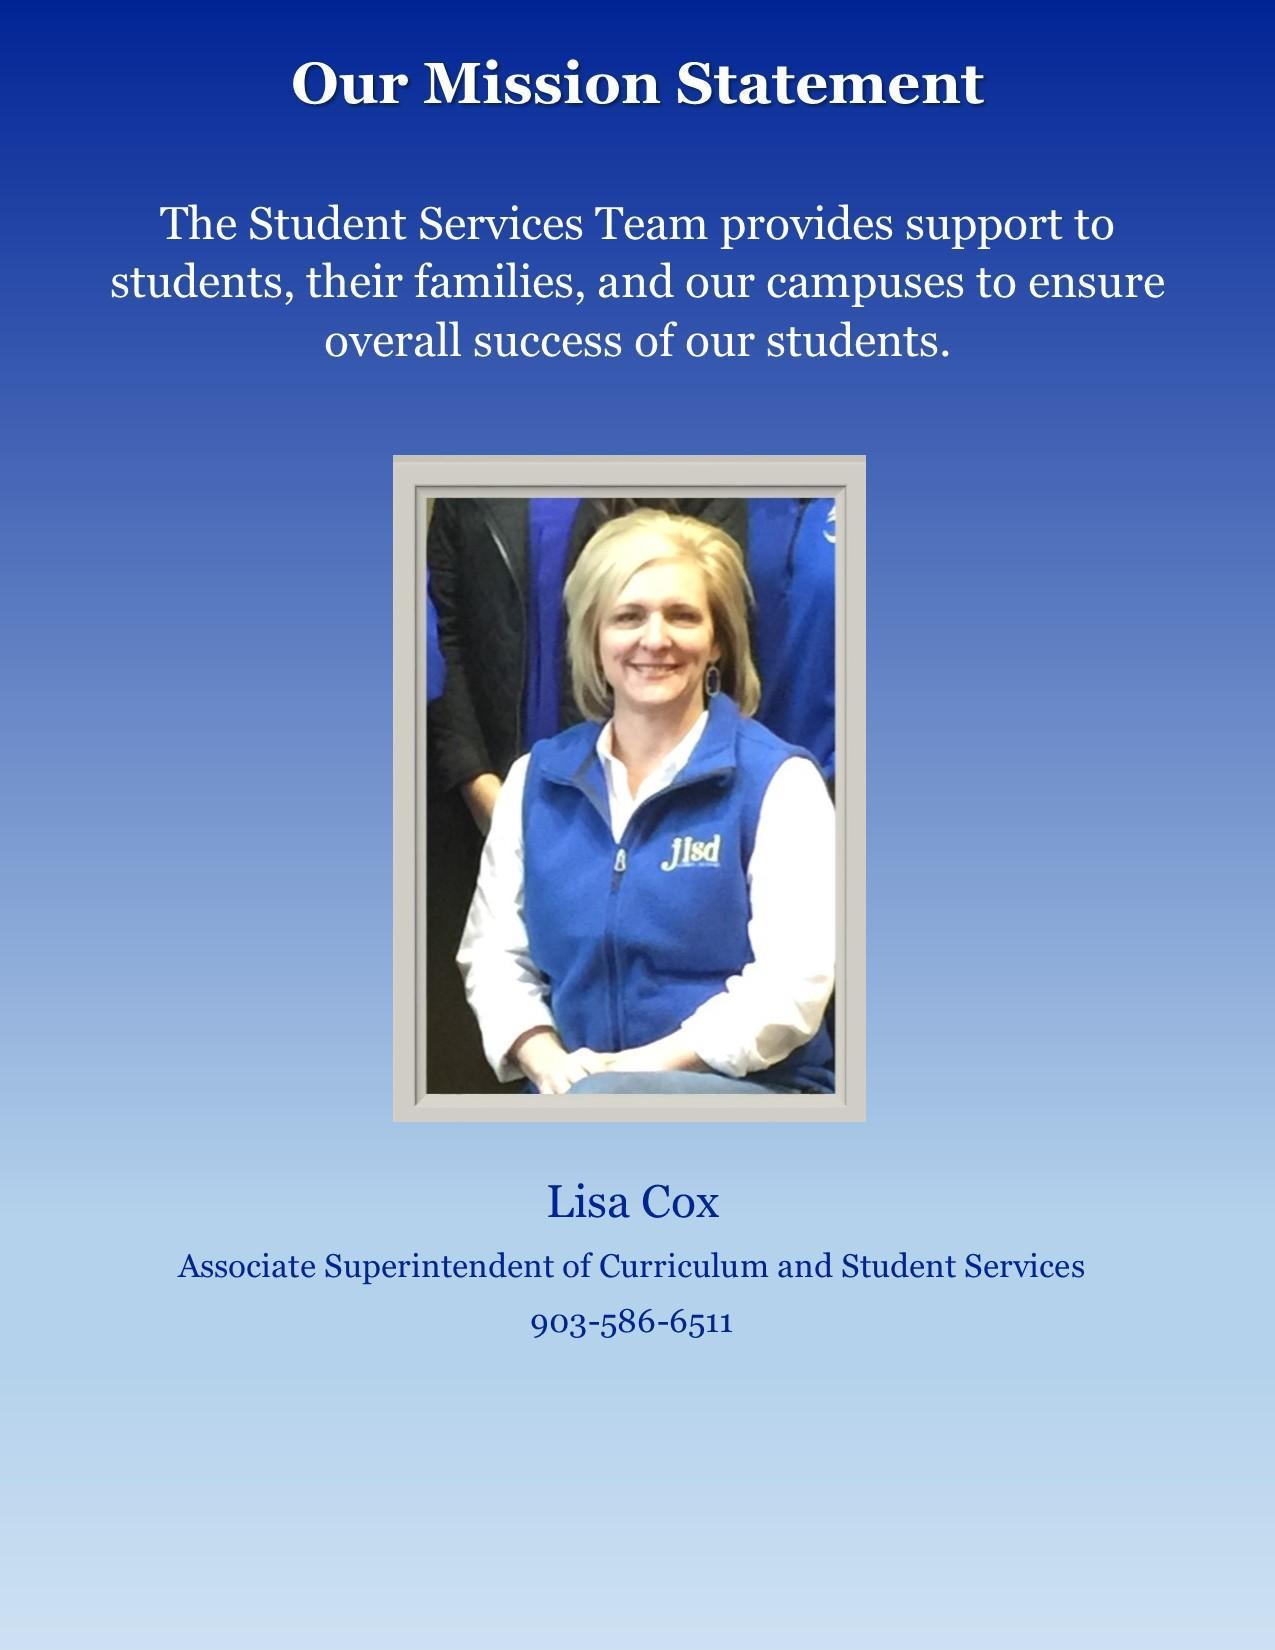 lisa cox, student services department